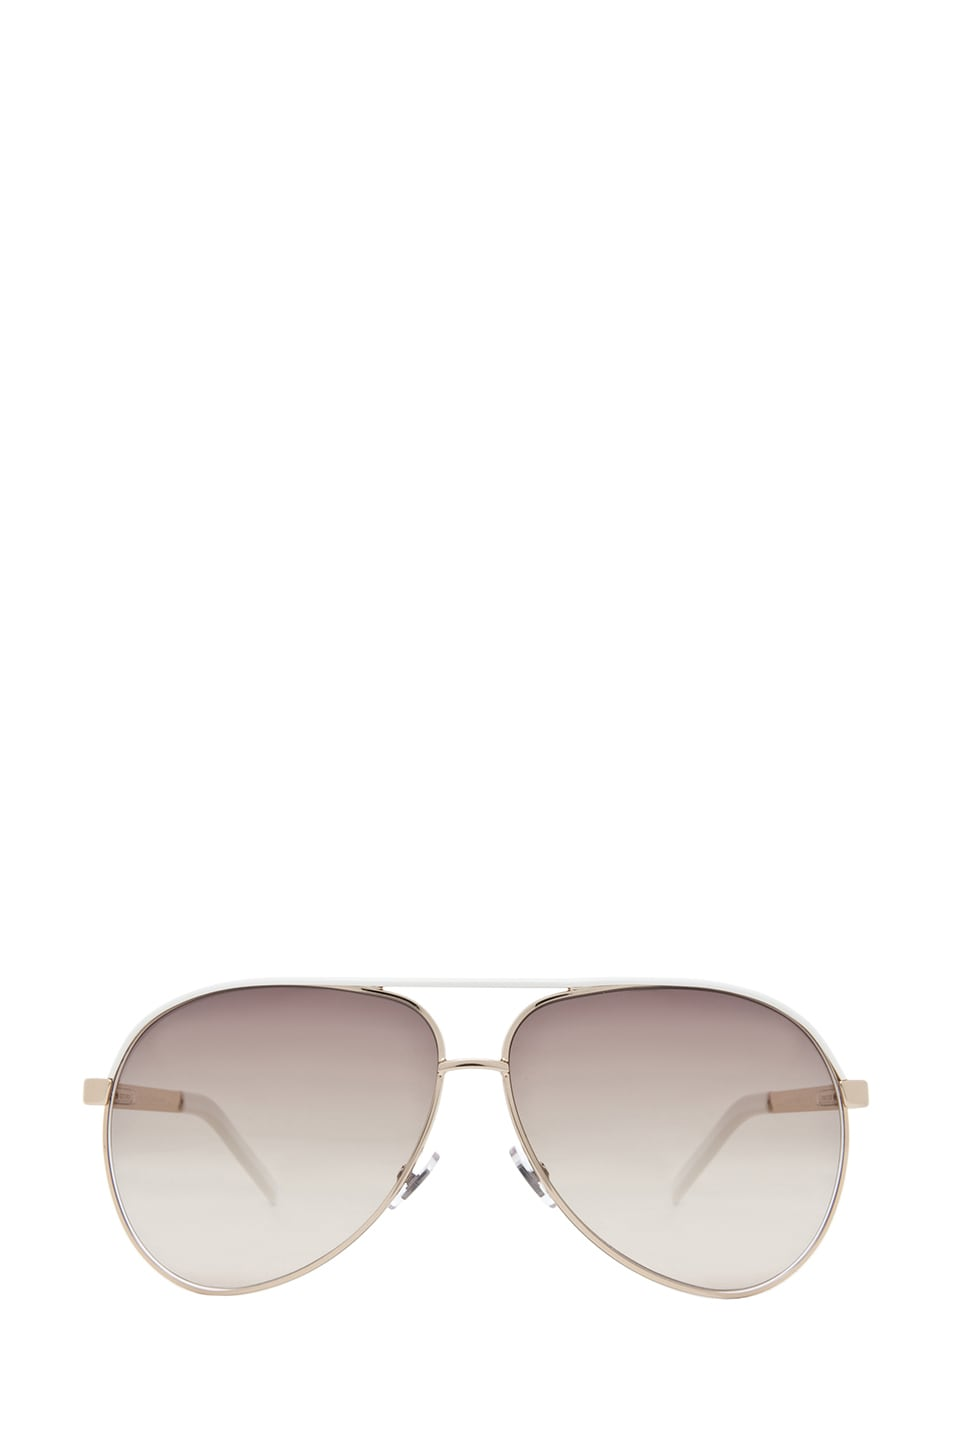 Image 1 of Gucci 1827 Sunglasses in Gold & Brown Gray Gradient